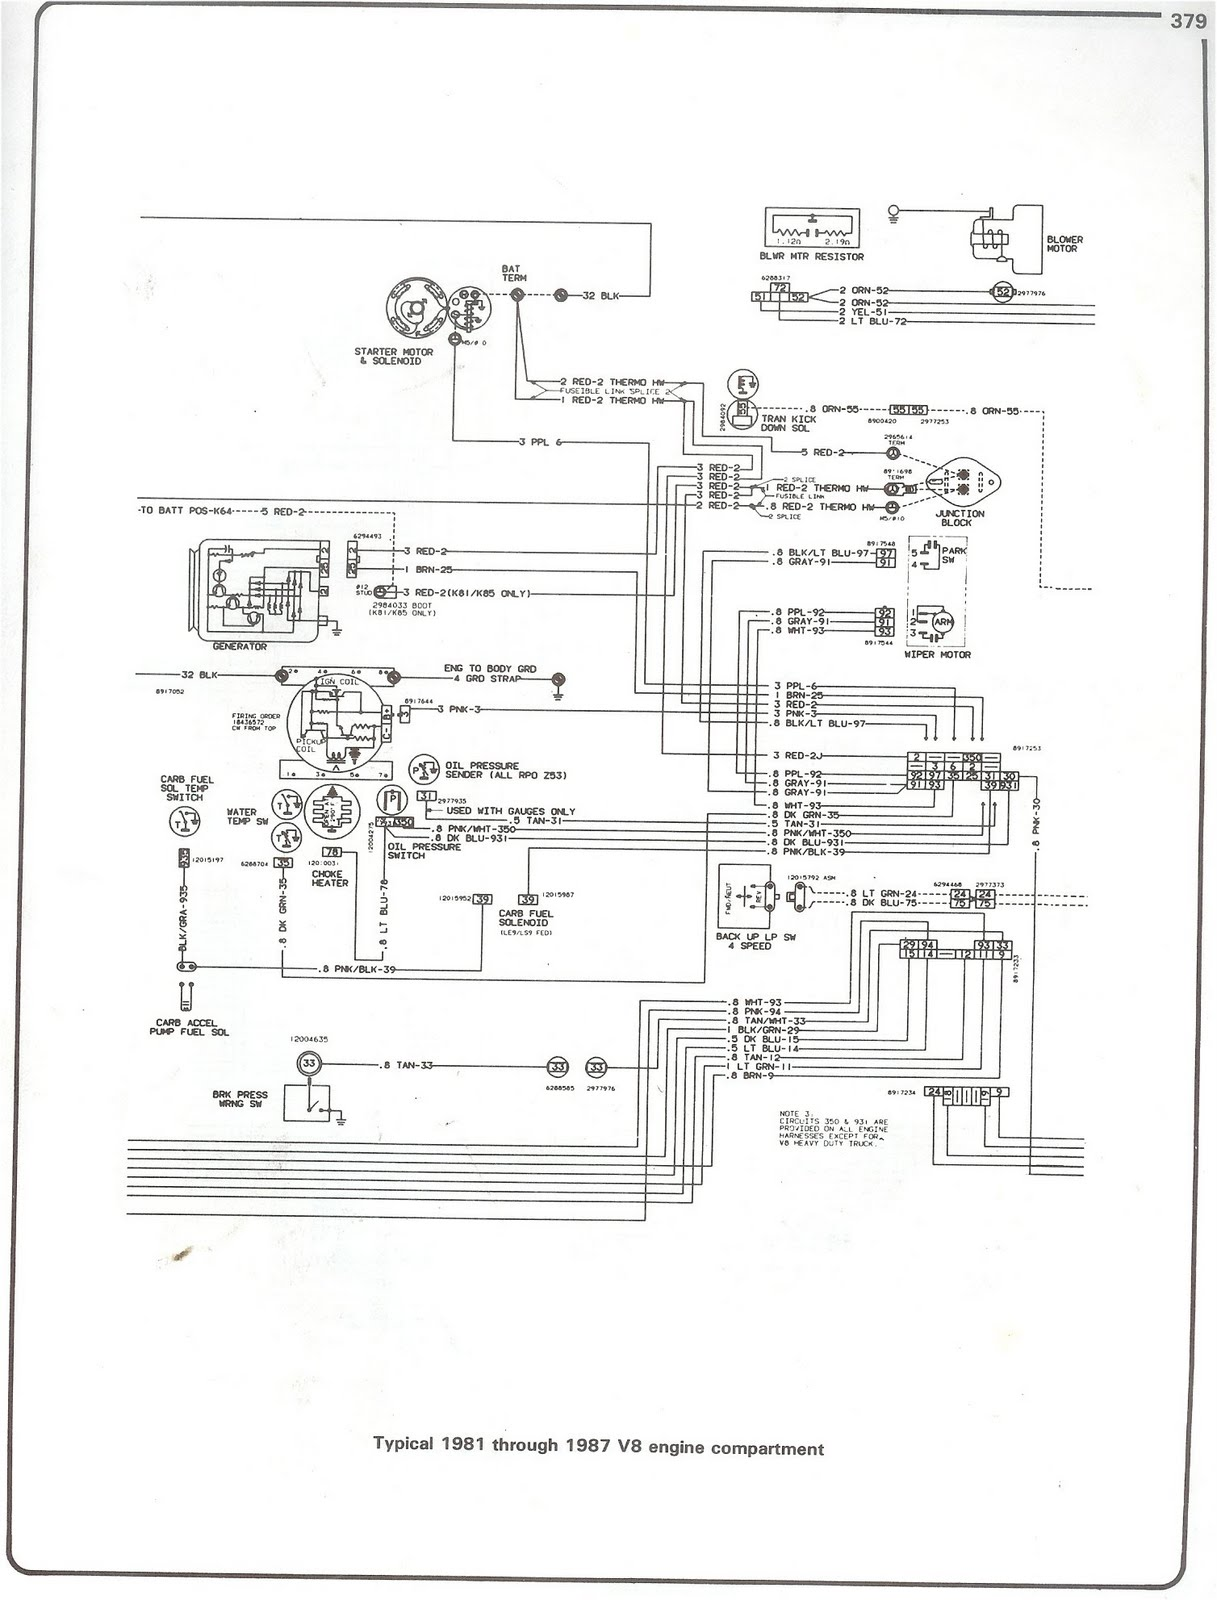 auto wiring diagram 1981 1987 chevrolet v8 truck engine this is engine compartment wiring diagram for 1981 trough 1987 chevrolet v8 truck click the picture to